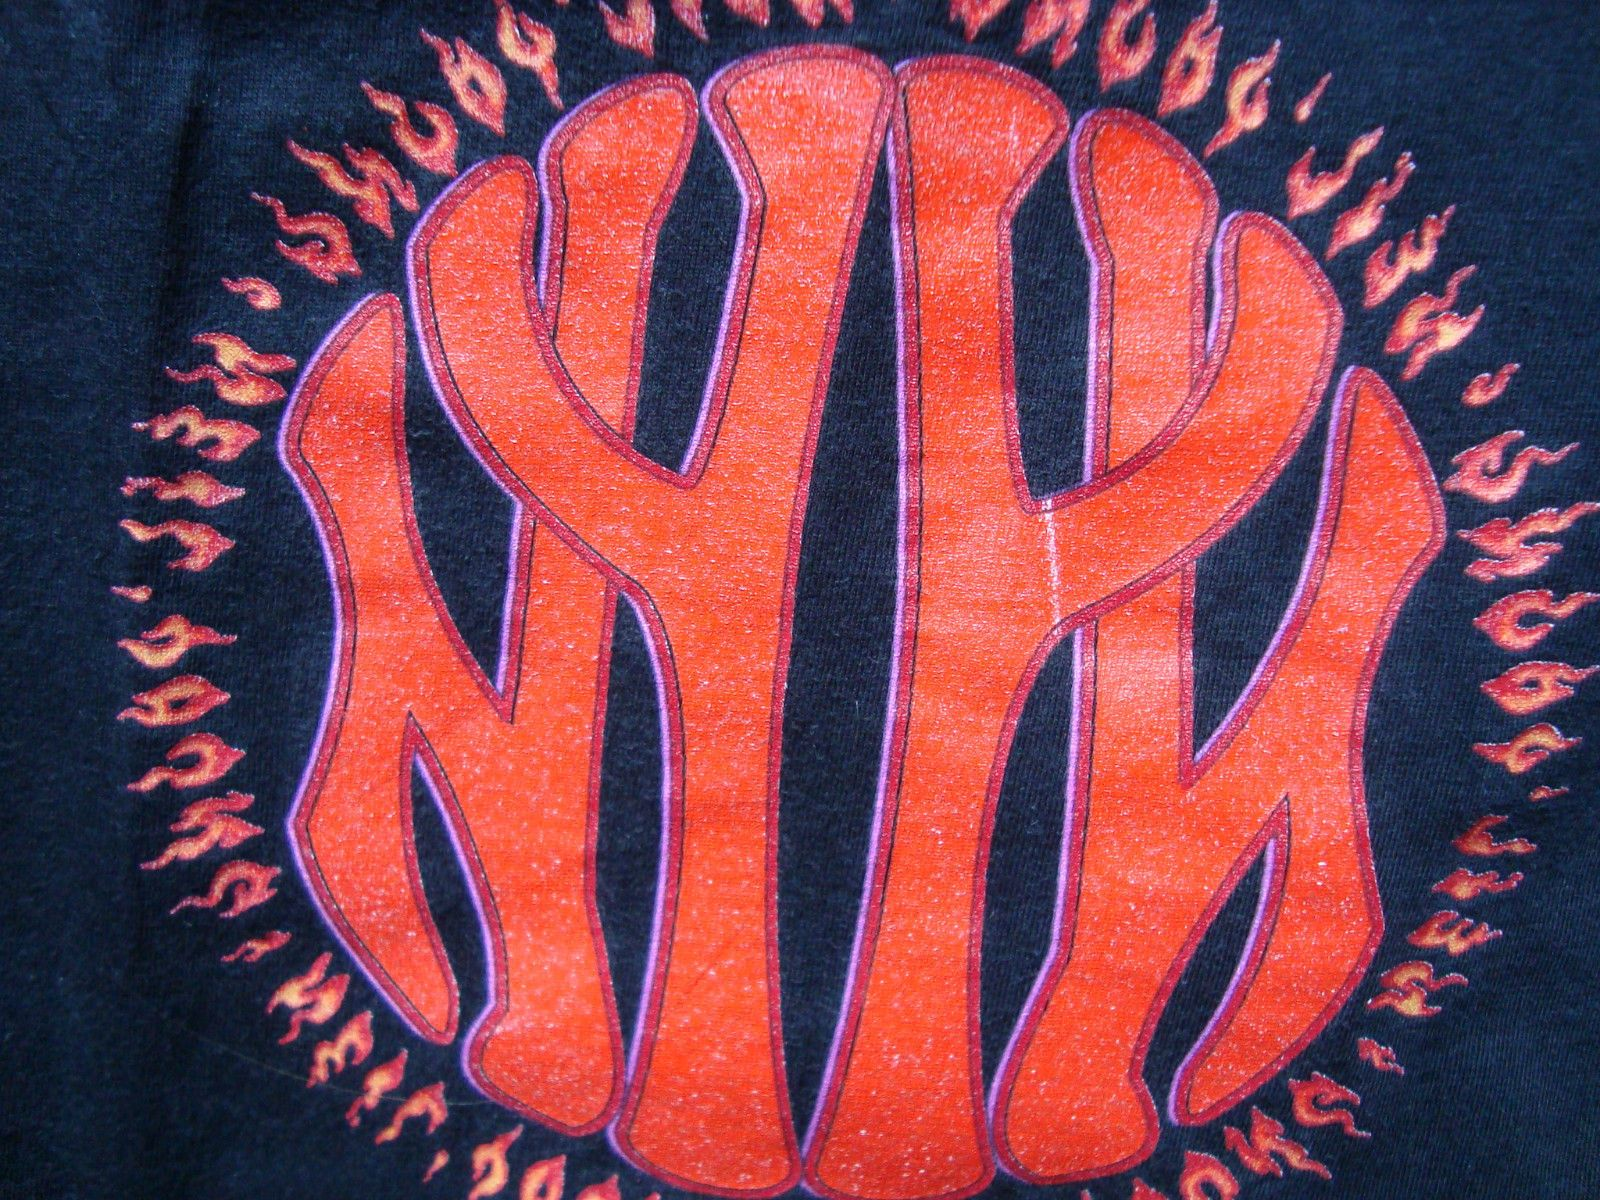 Neil Young Mirror Ball Tour 1995 T Shirt Large 90 S Neil Young